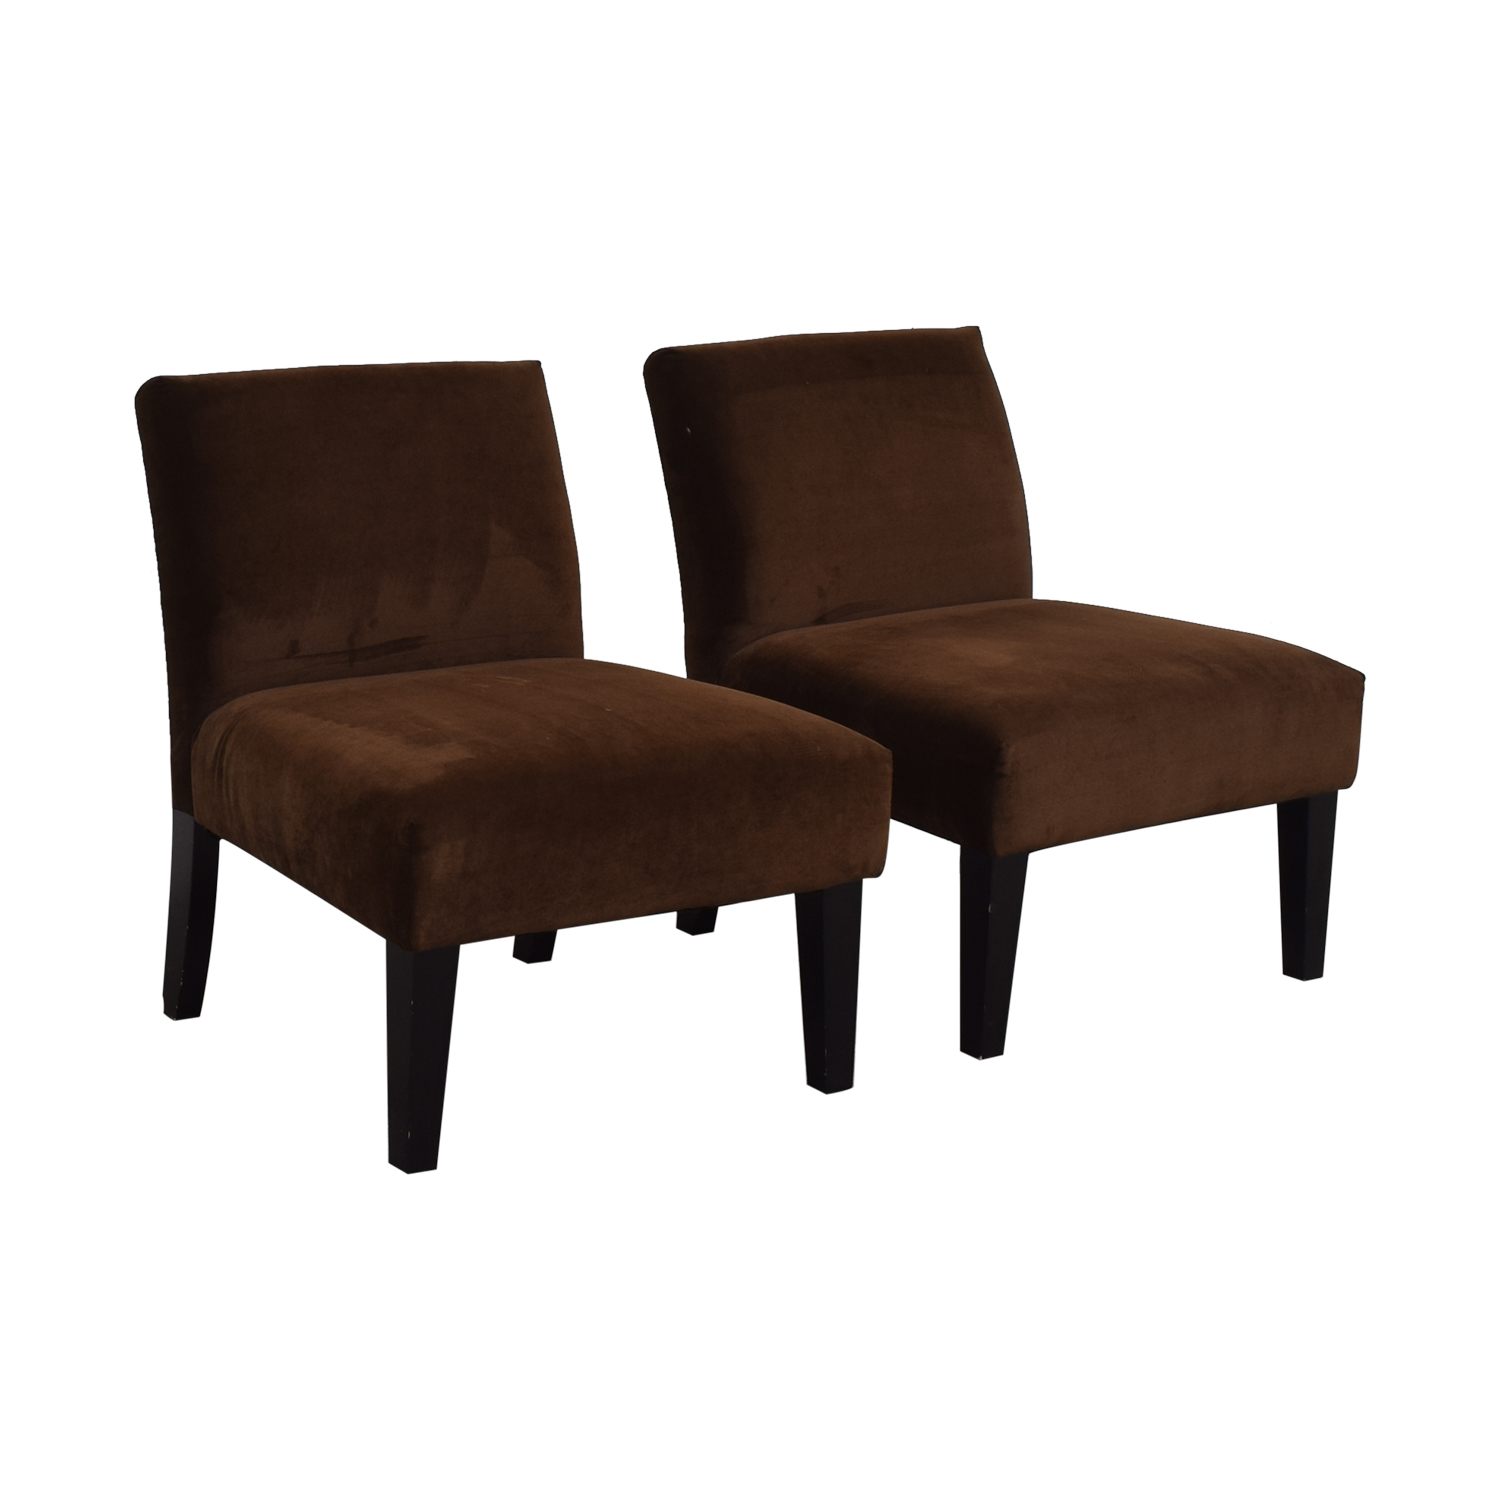 Brown Armless Side Chairs / Accent Chairs